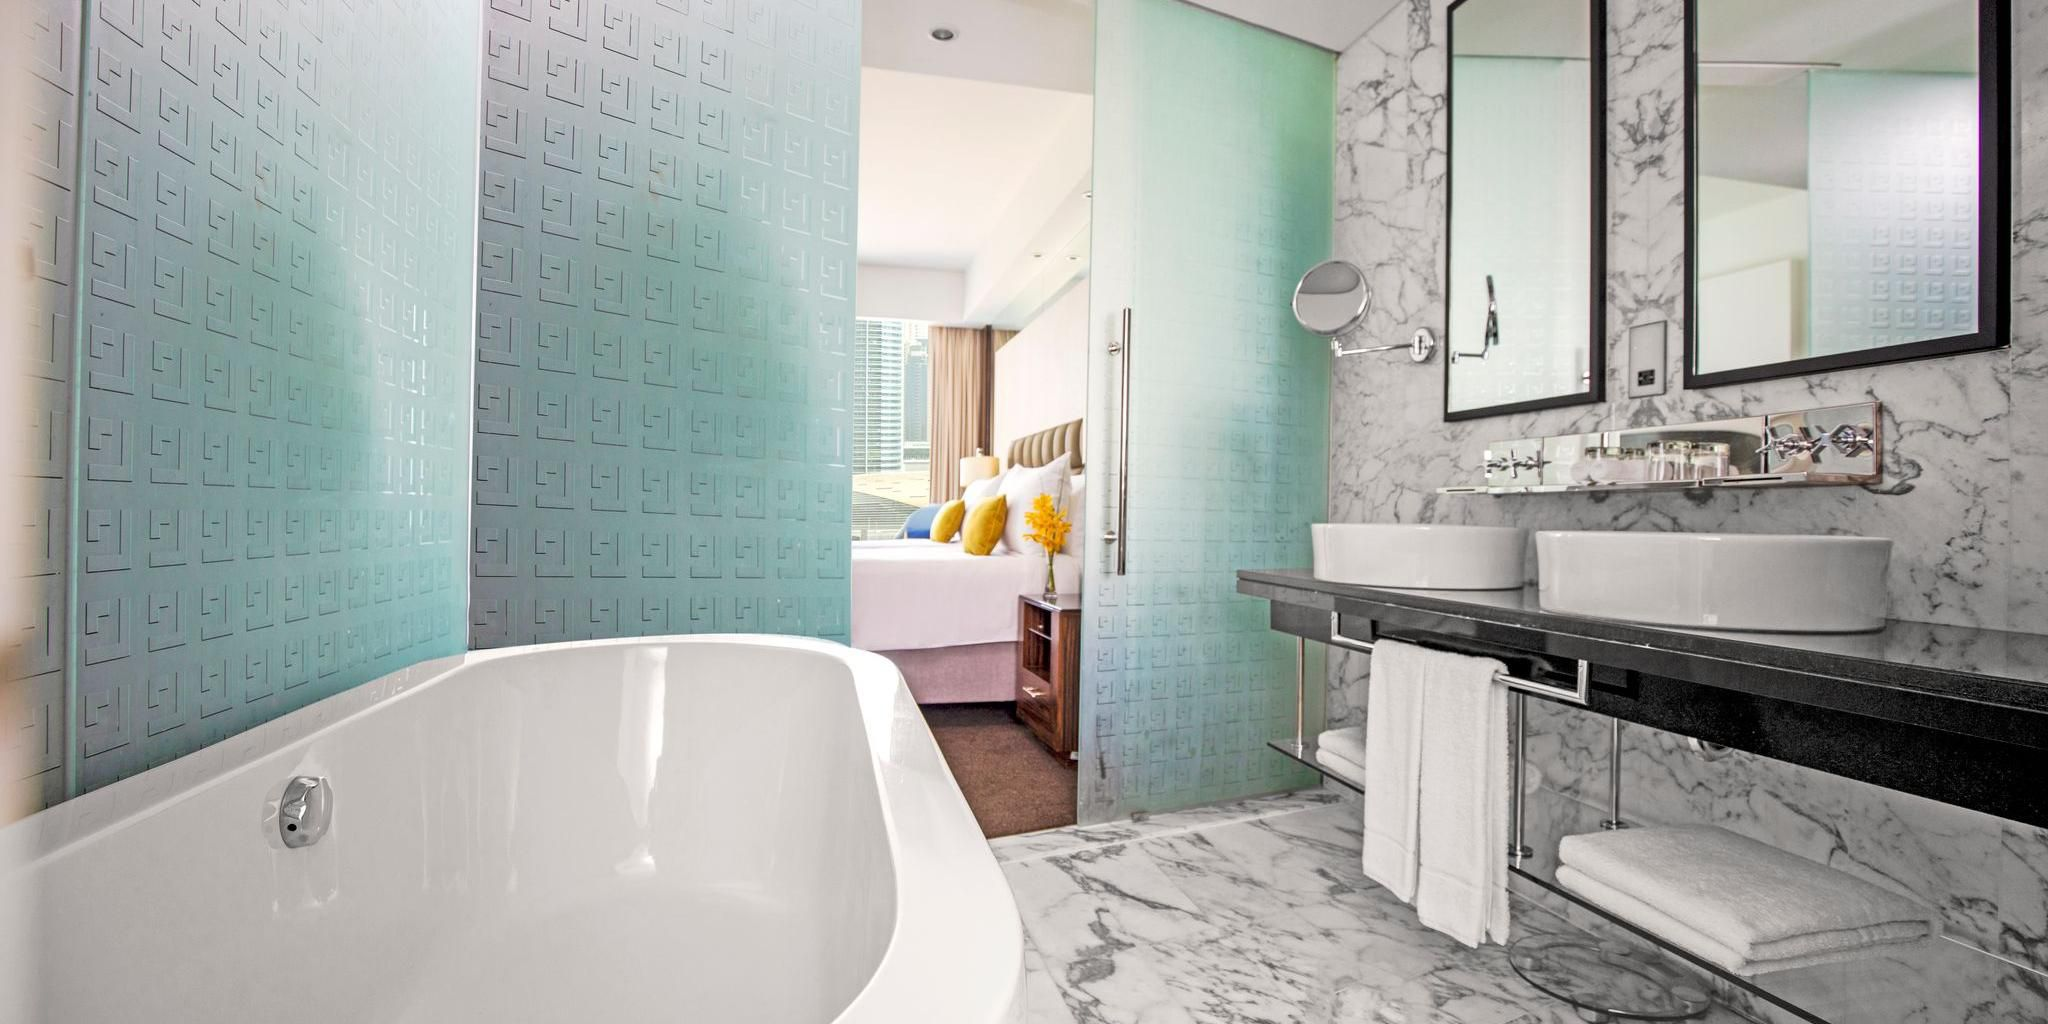 Relax and unwind in our spacious bathroom of the Deluxe room